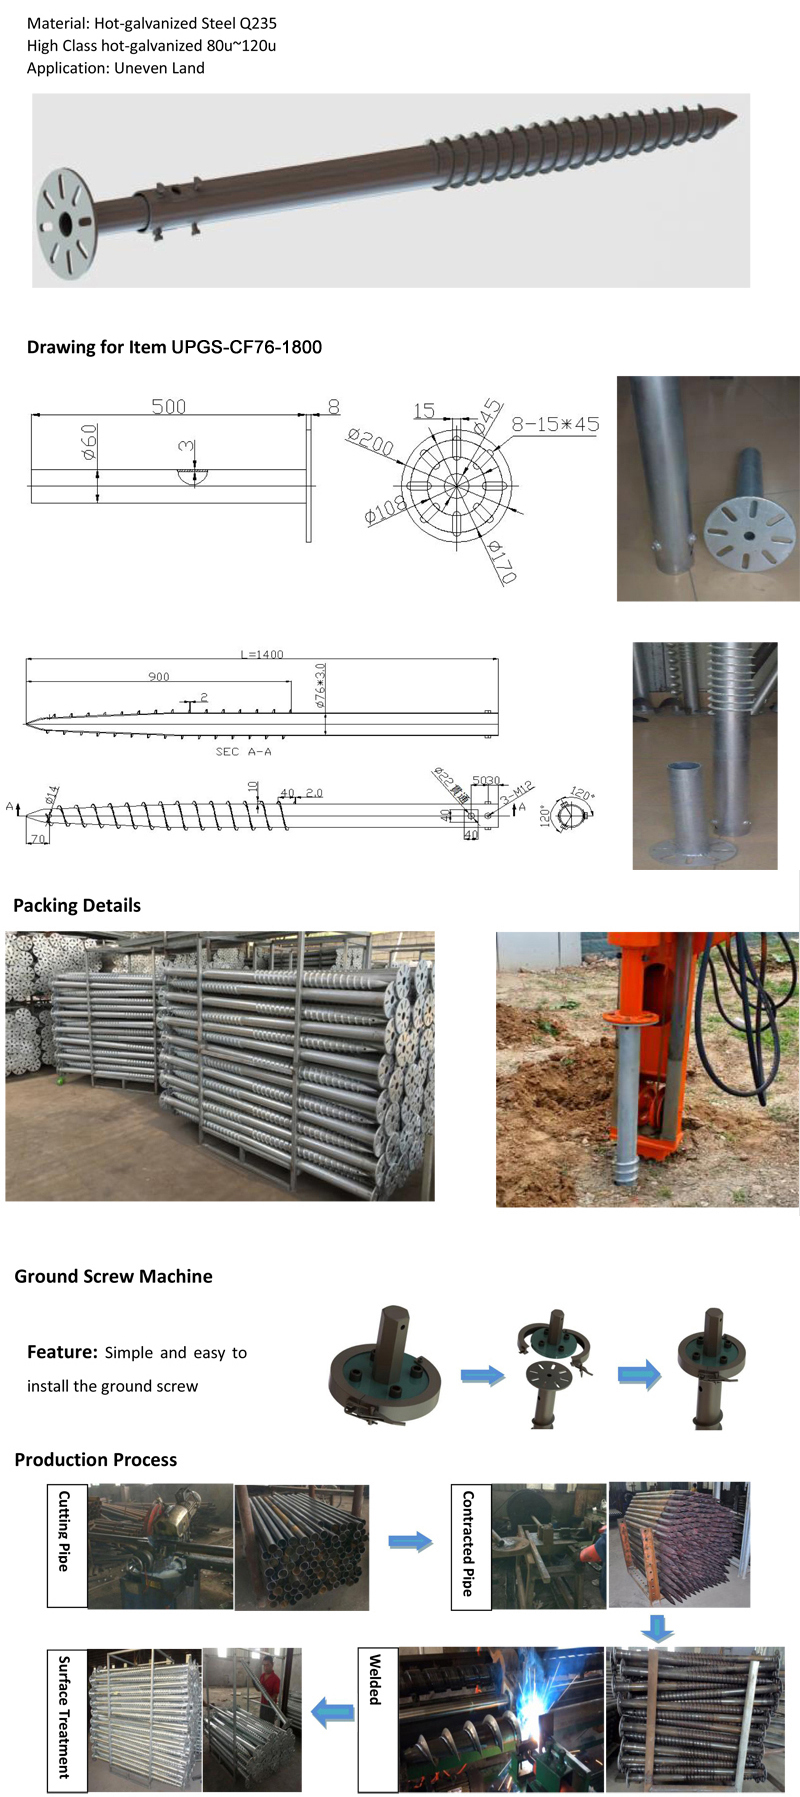 14847238836021131 - Hard Soil Ground Screws -Fixed and  Adjustable Ground Screws for use in mounting ground based solar arrays, decks, and camps. - solar-mounting-equipment - 14847238836021131